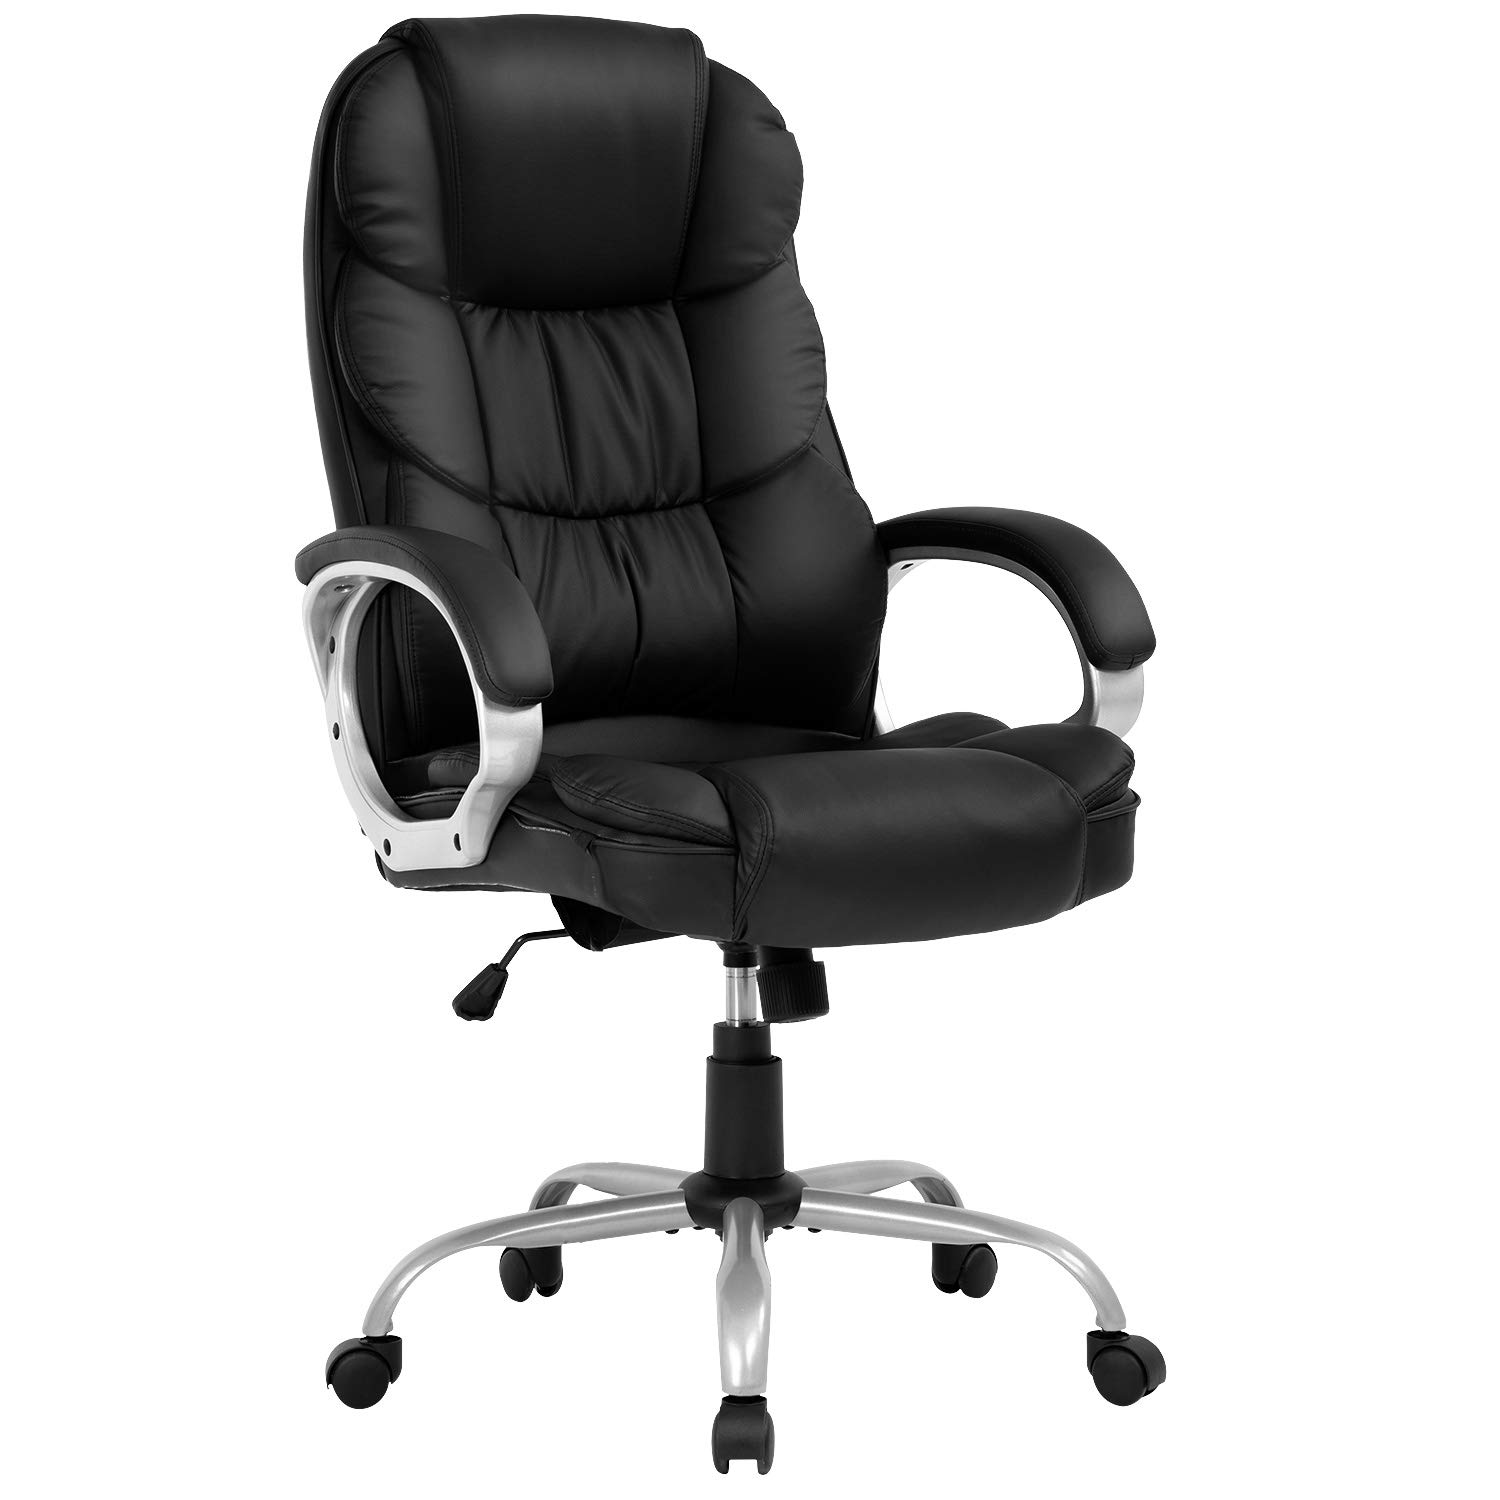 Ergonomic Office Chair,Computer Desk Chair High Back PU Leather Executive Rolling Task Adjustable Chair with Lumbar Support Headrest Armrest Swivel Chair, Black